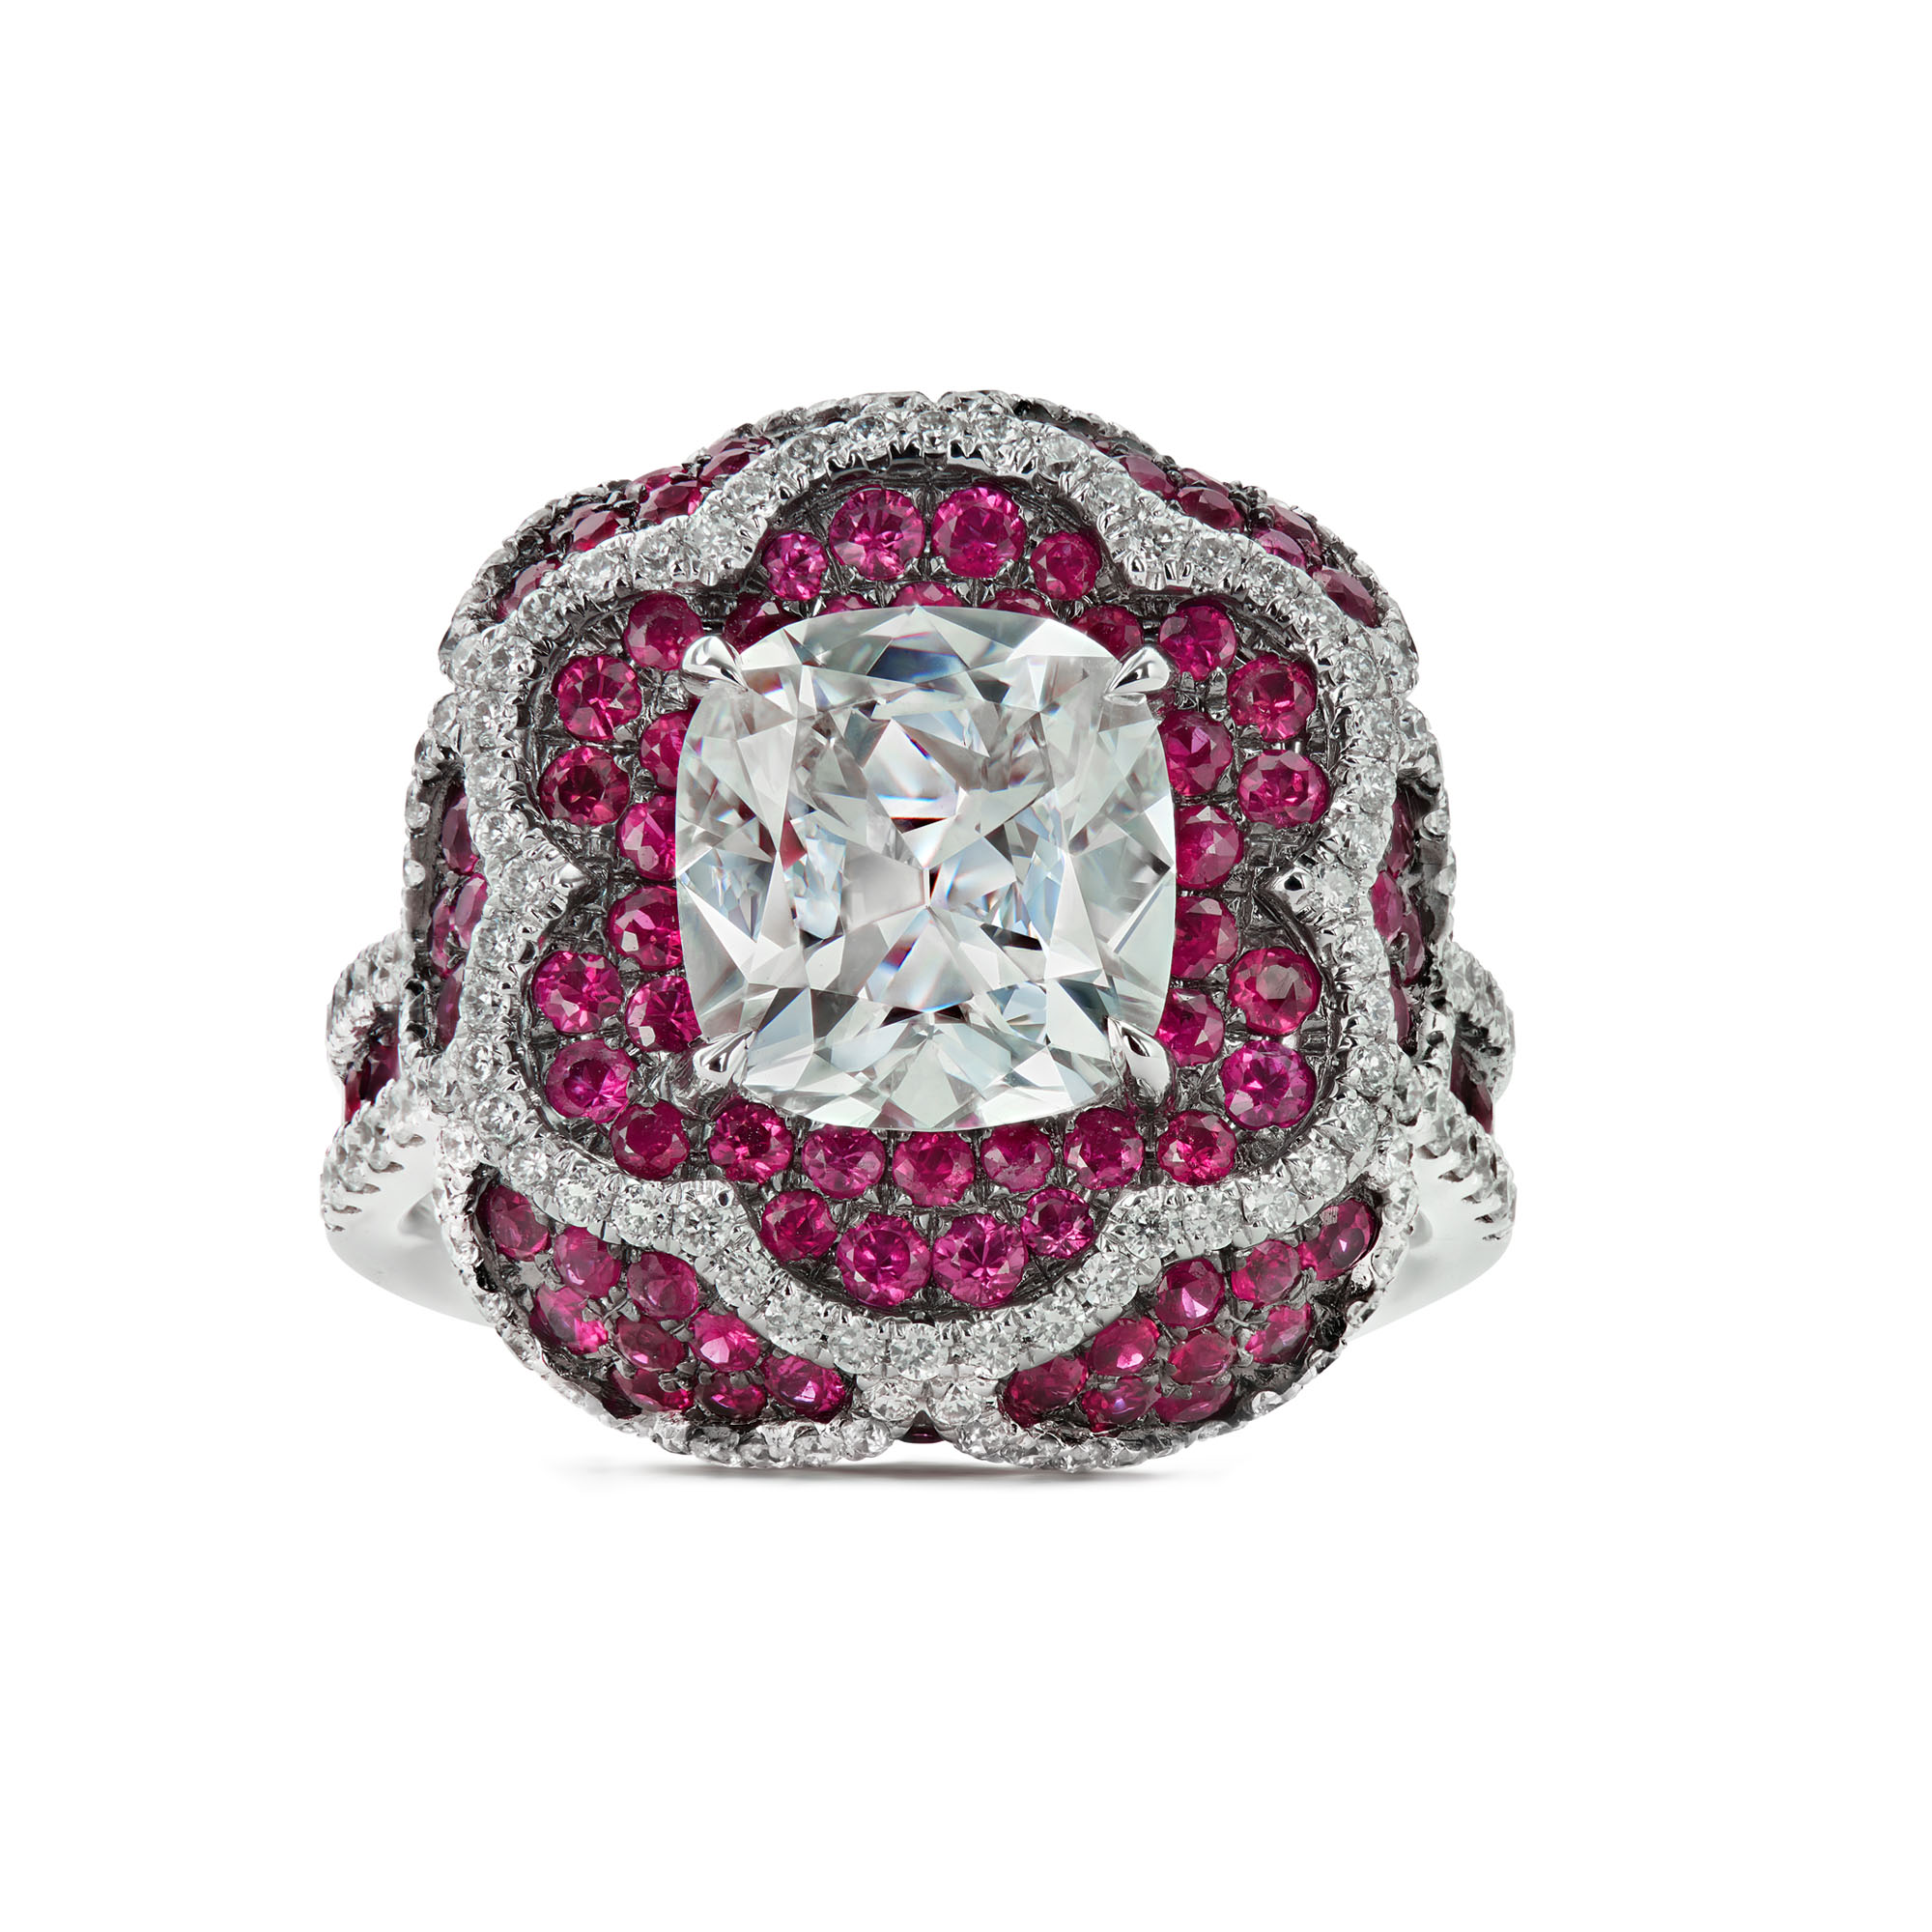 Fleur Diamonds in Rubies Ring